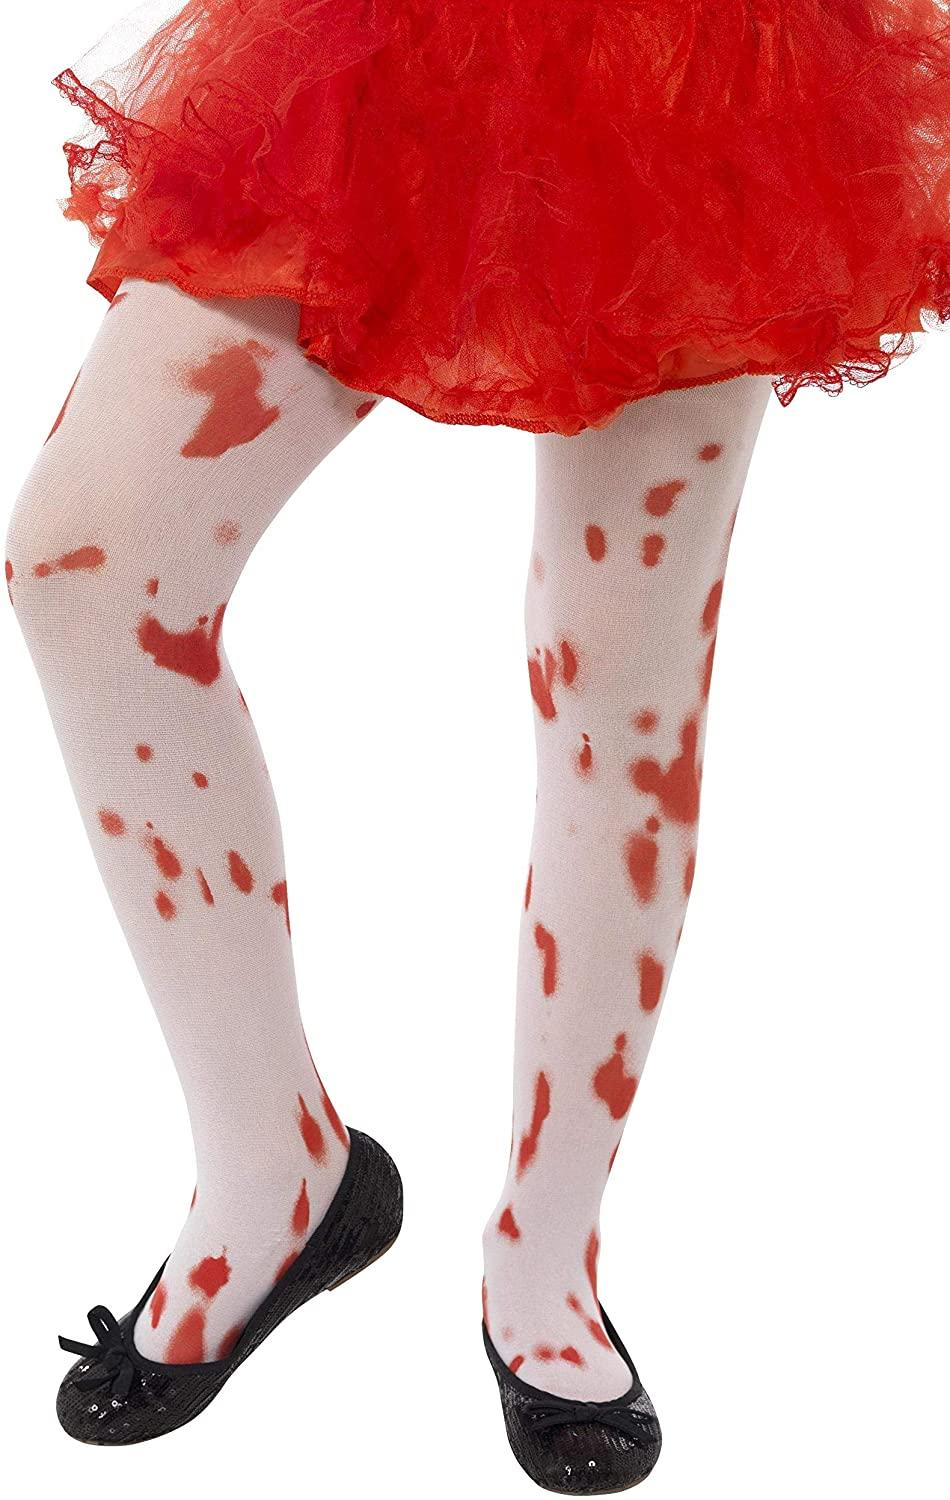 Bloodstained Tights Age 6-12